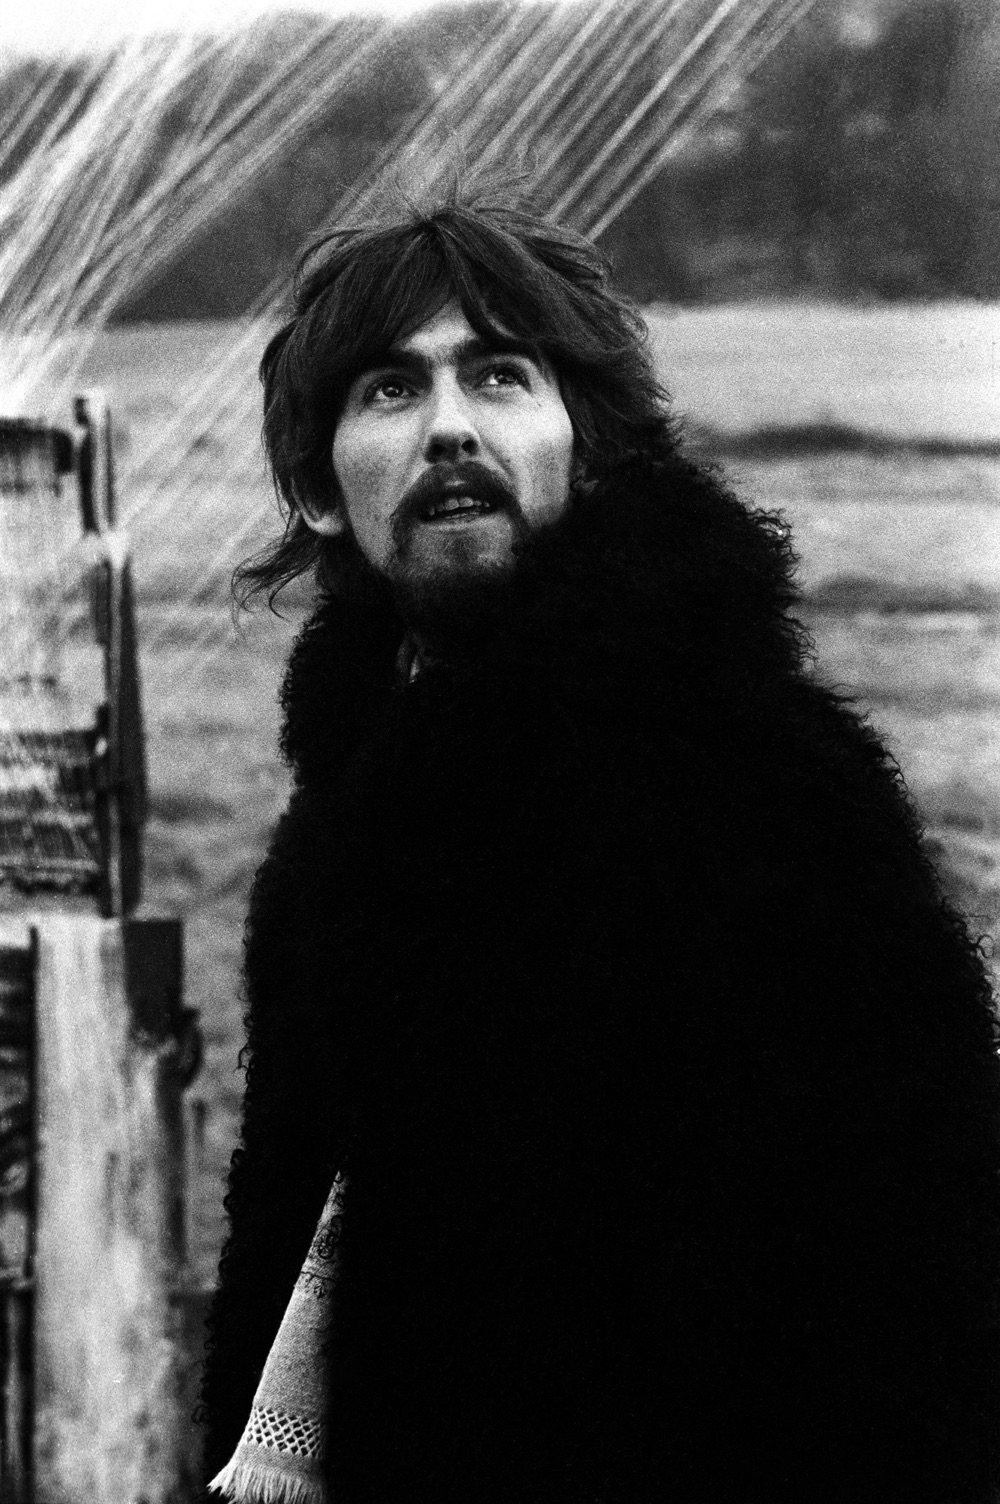 George Harrison  filming a promo video for Strawberry Fields Forever, January 1967.